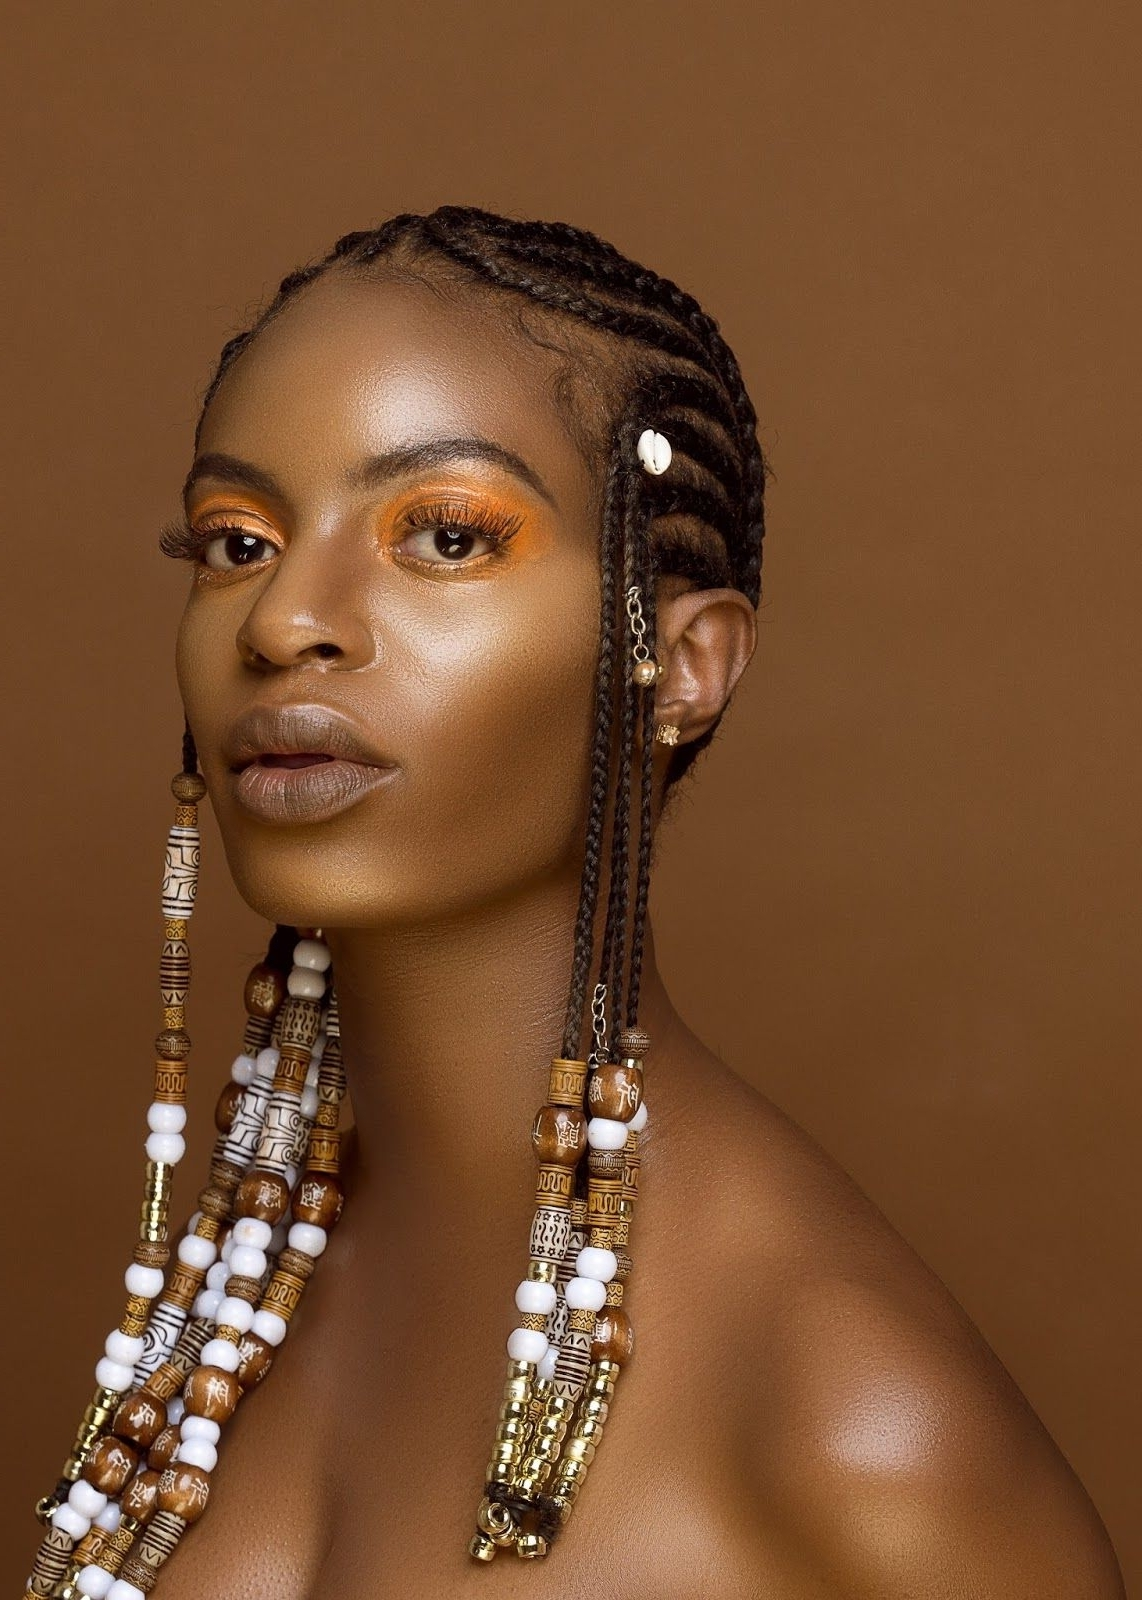 10 Inspirational Photos Of Braids With Beads And Cowrie Shells In Widely Used Simple Center Part Fulani Braids With A Forehead Bead (View 1 of 15)